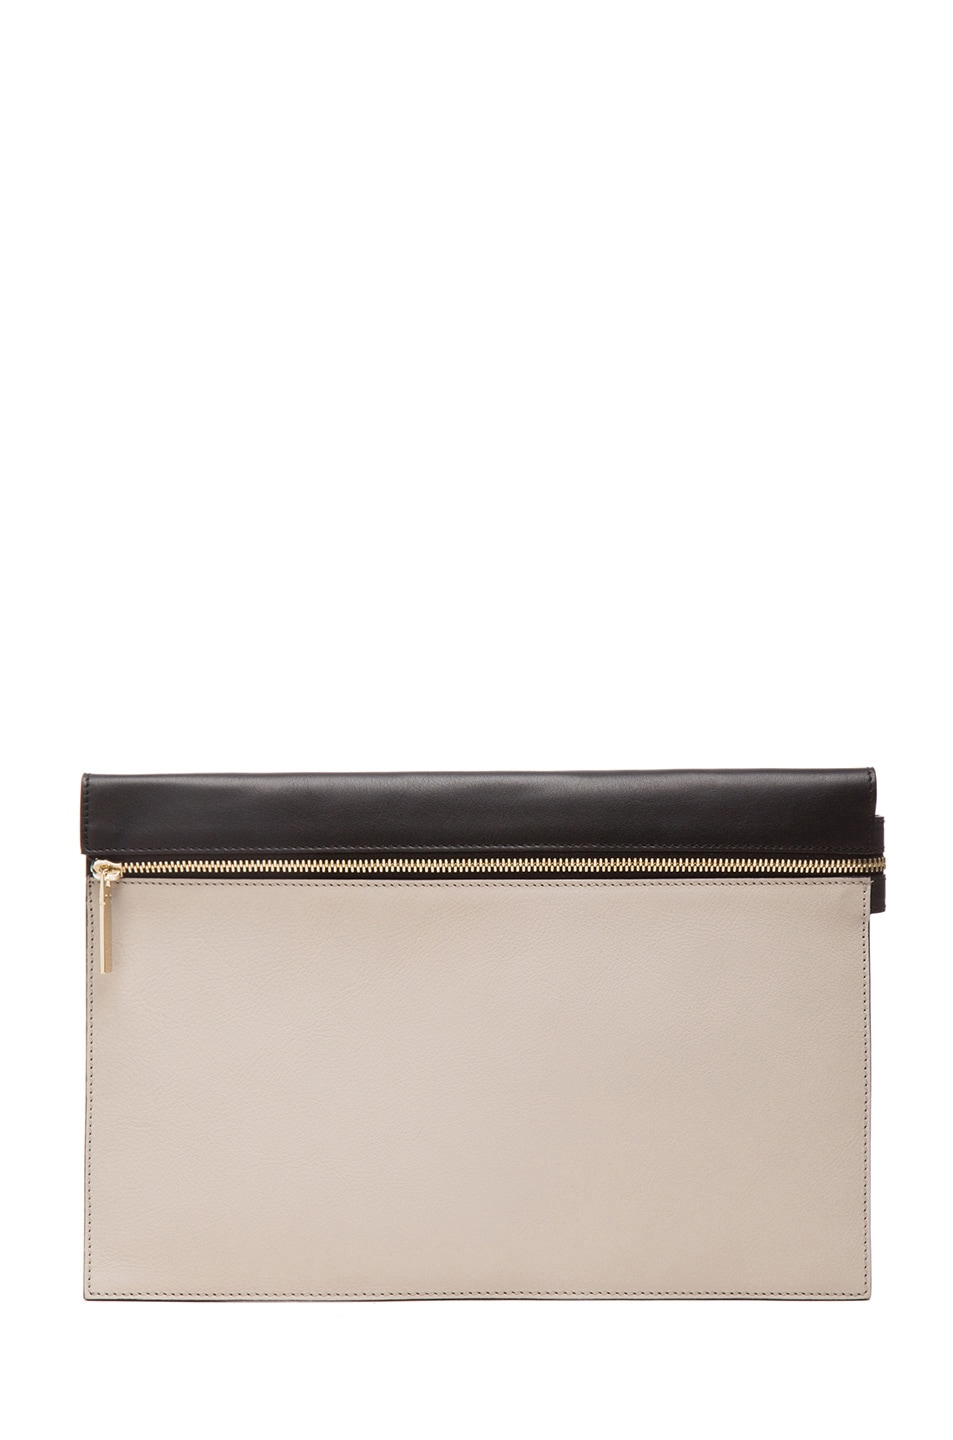 Image 1 of Victoria Beckham Large Zip Pouch in Light Grey & Black